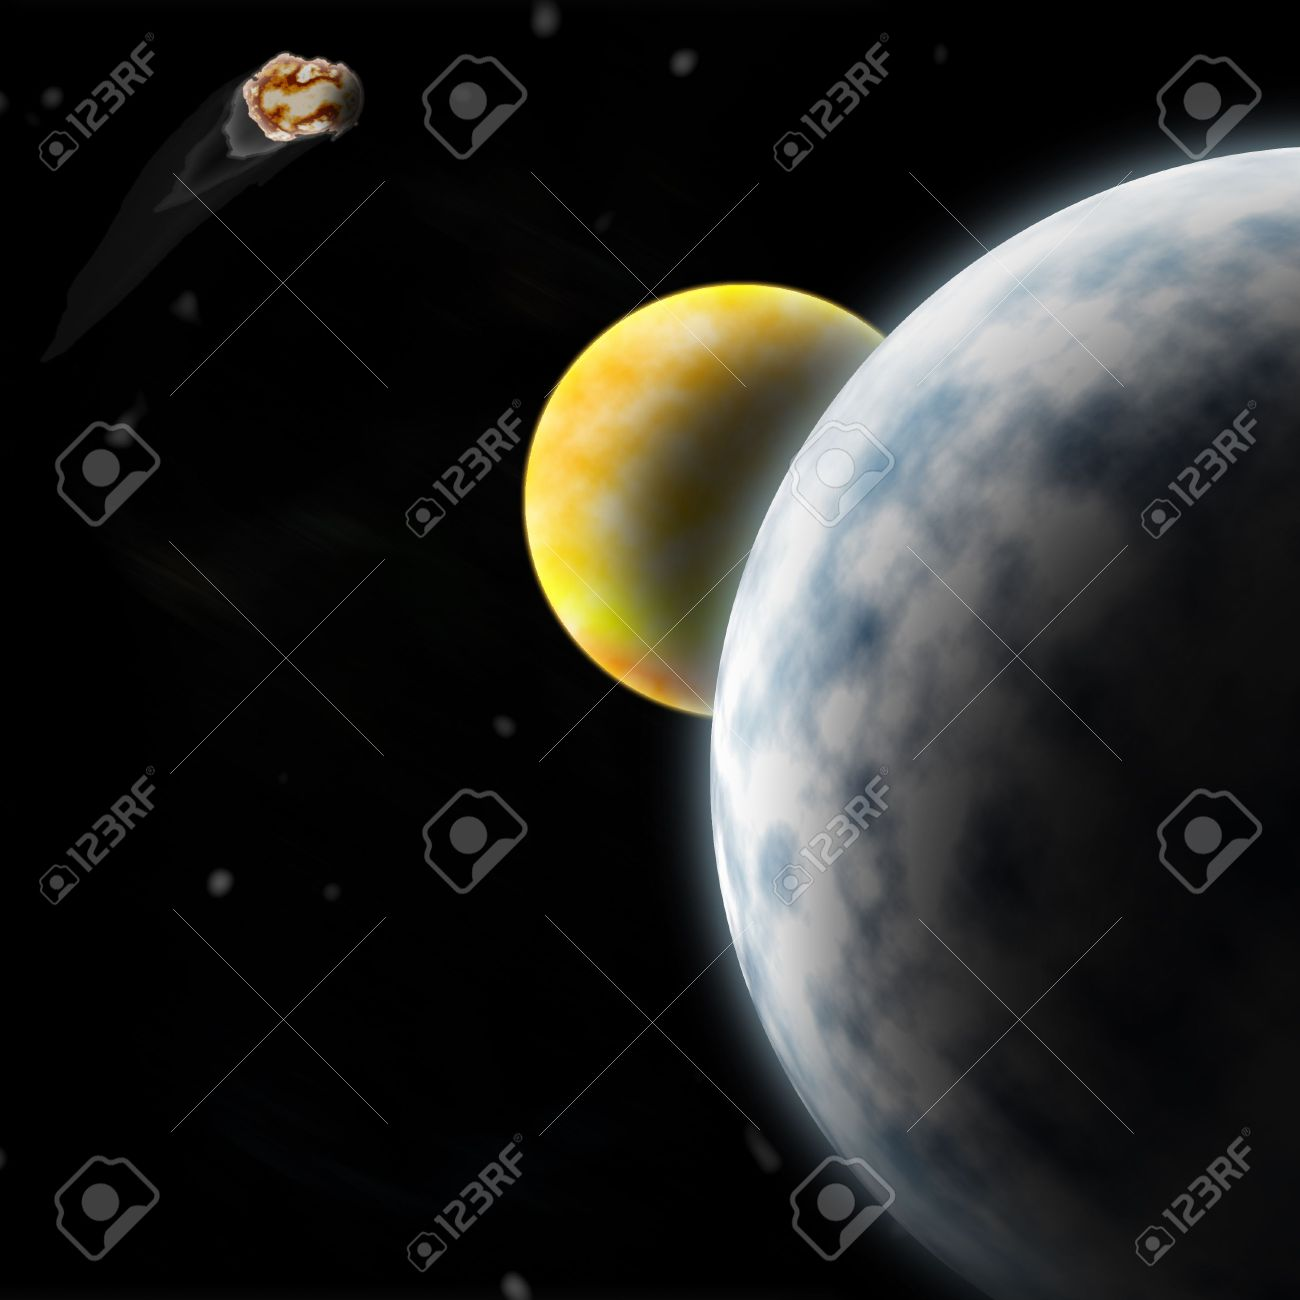 1300x1300 Drawing Of Outer Space Two Planets And An Asteroid Stock Photo